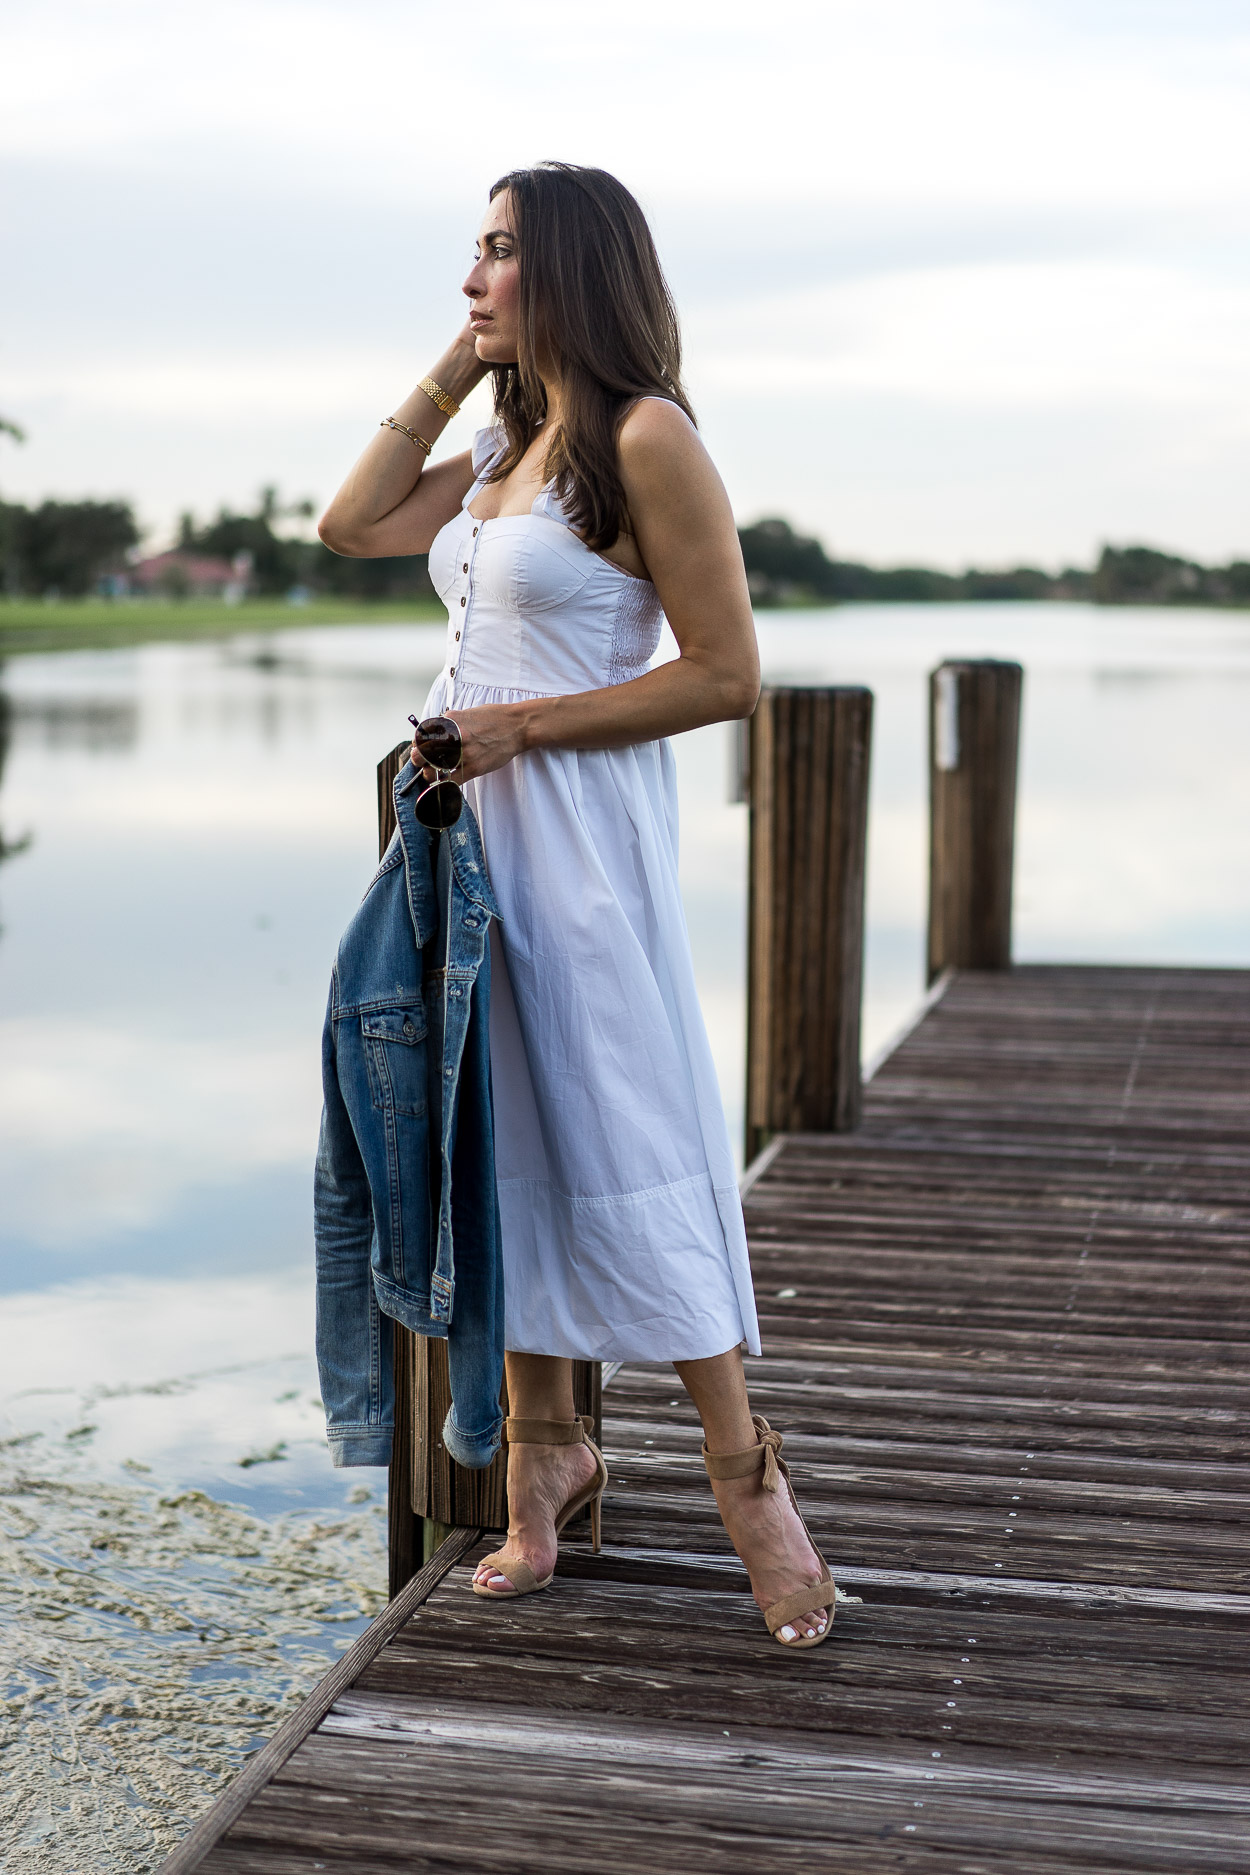 Summer white dresses are easy at the lake styled by AGlamLifestyle blogger Amanda